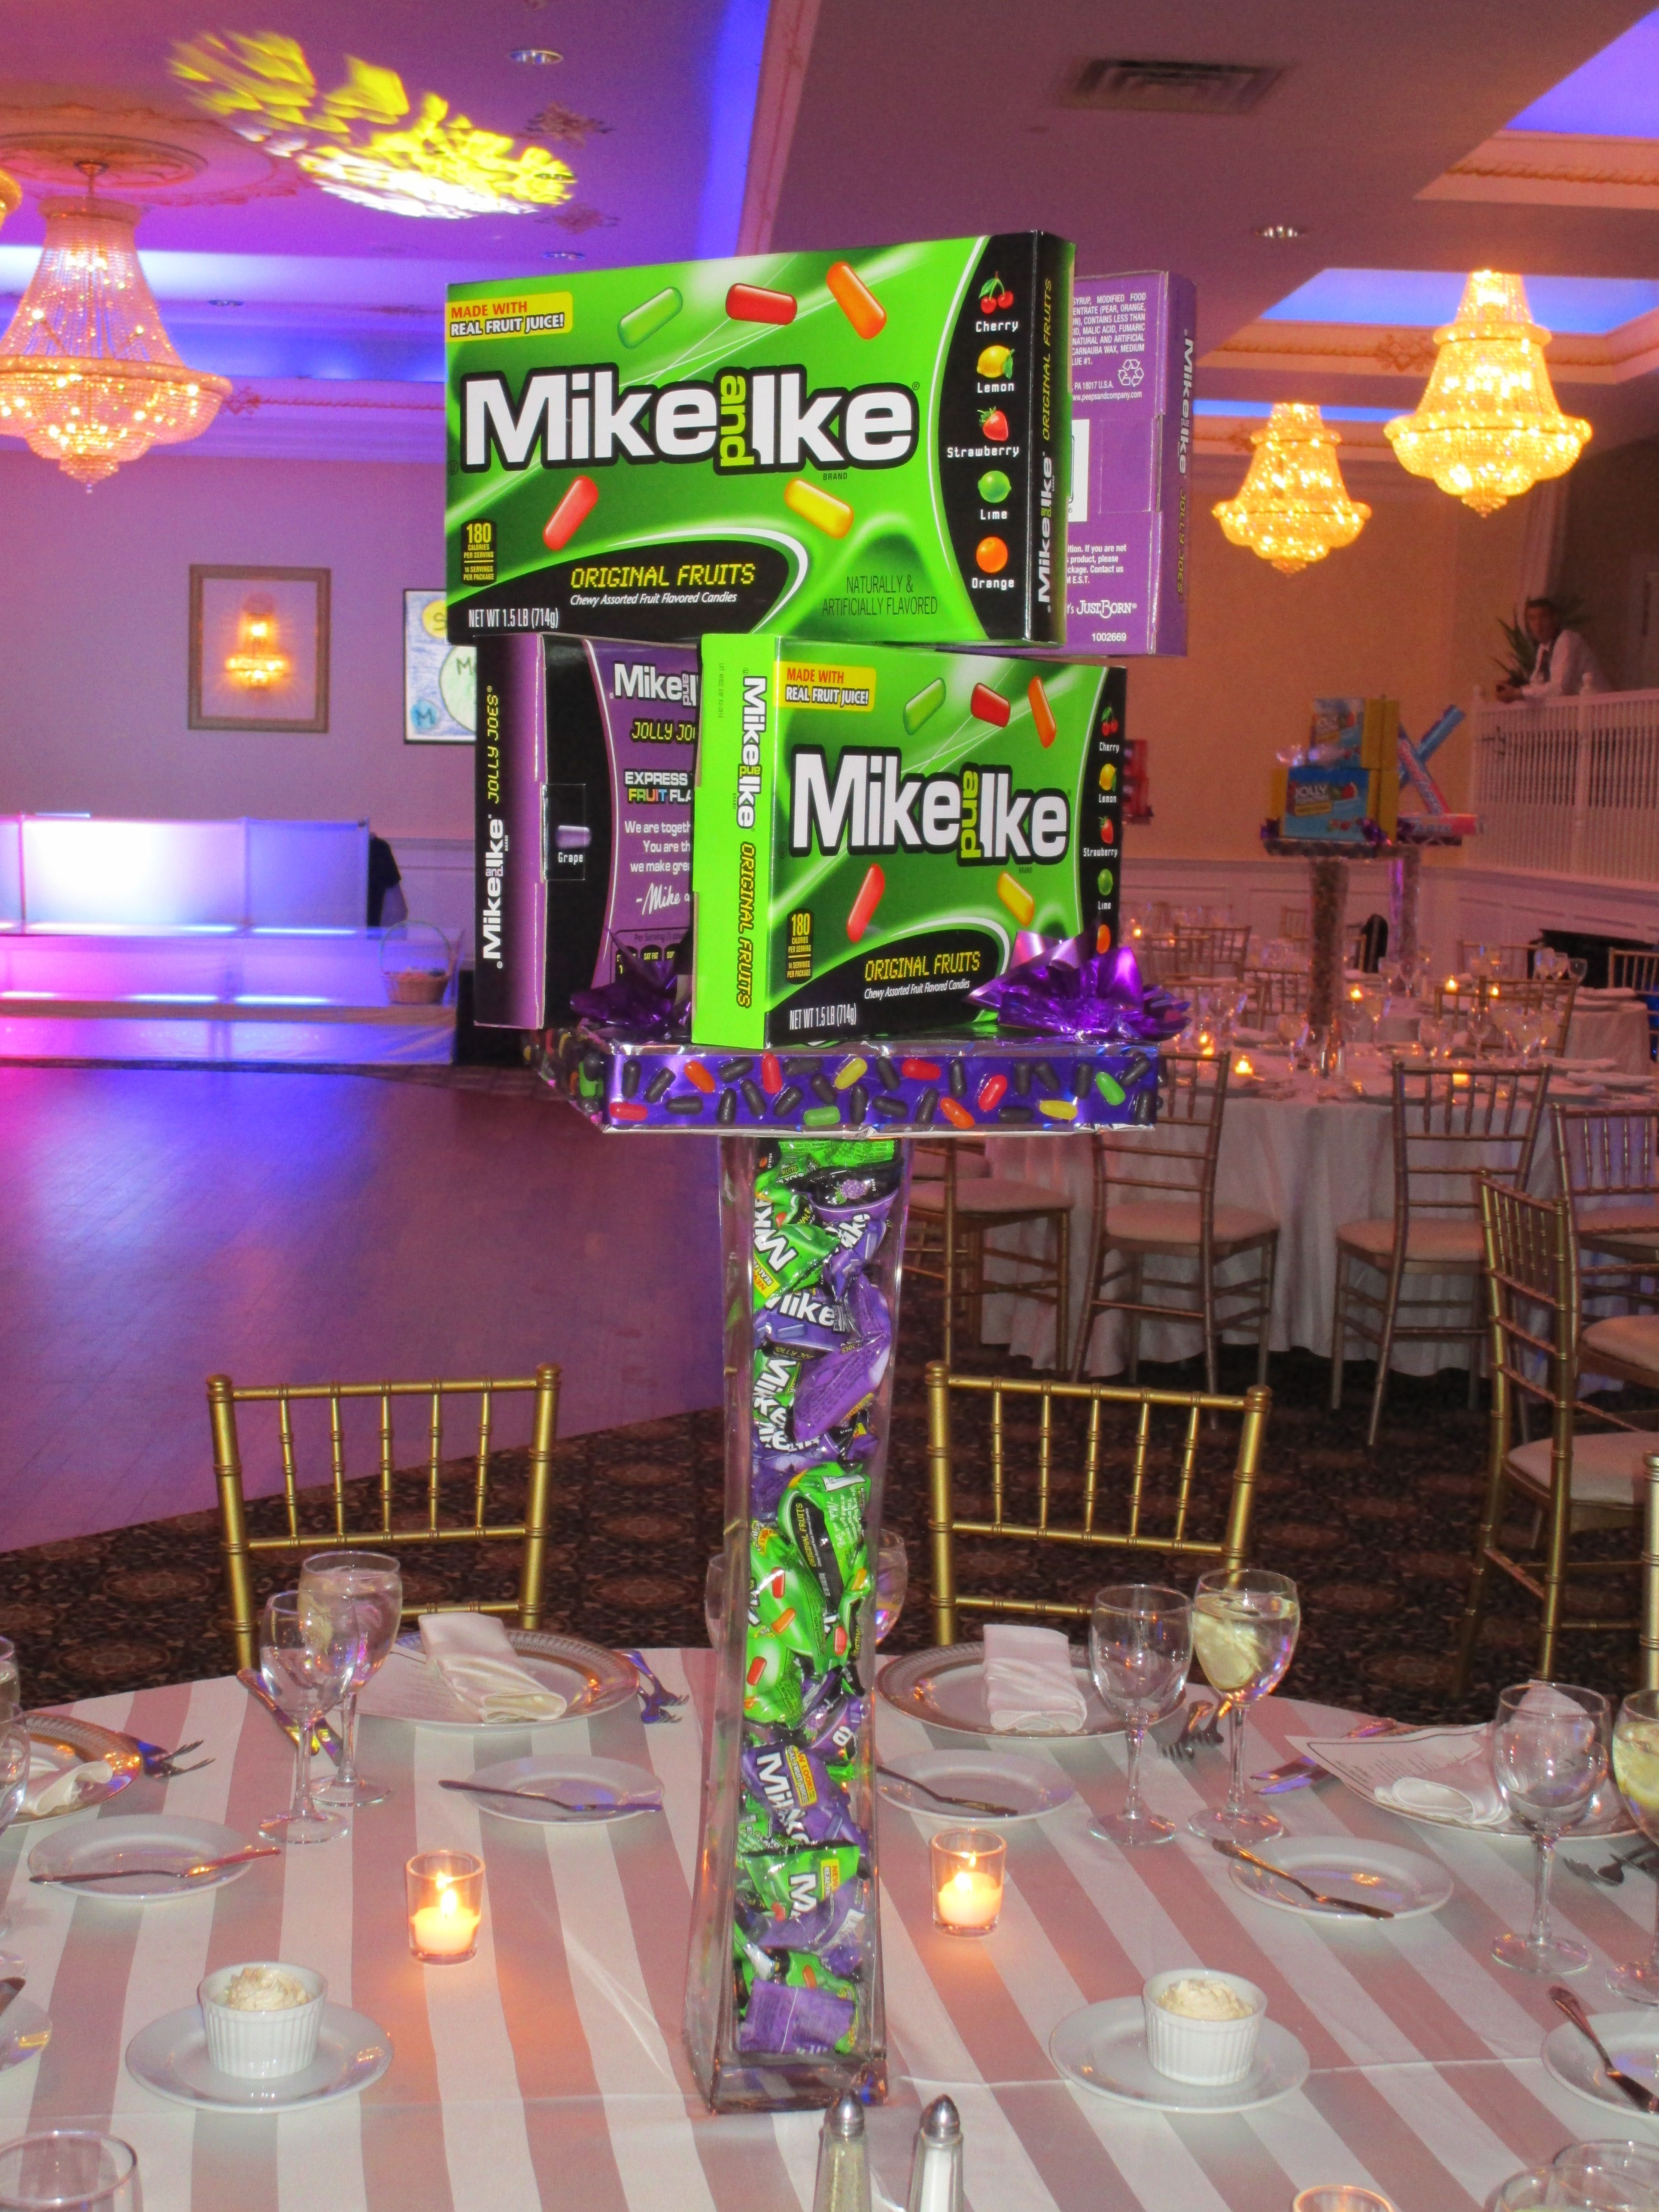 This Is The Mike N Ike Centerpiece For The Candy Theme Bat Mitzvah